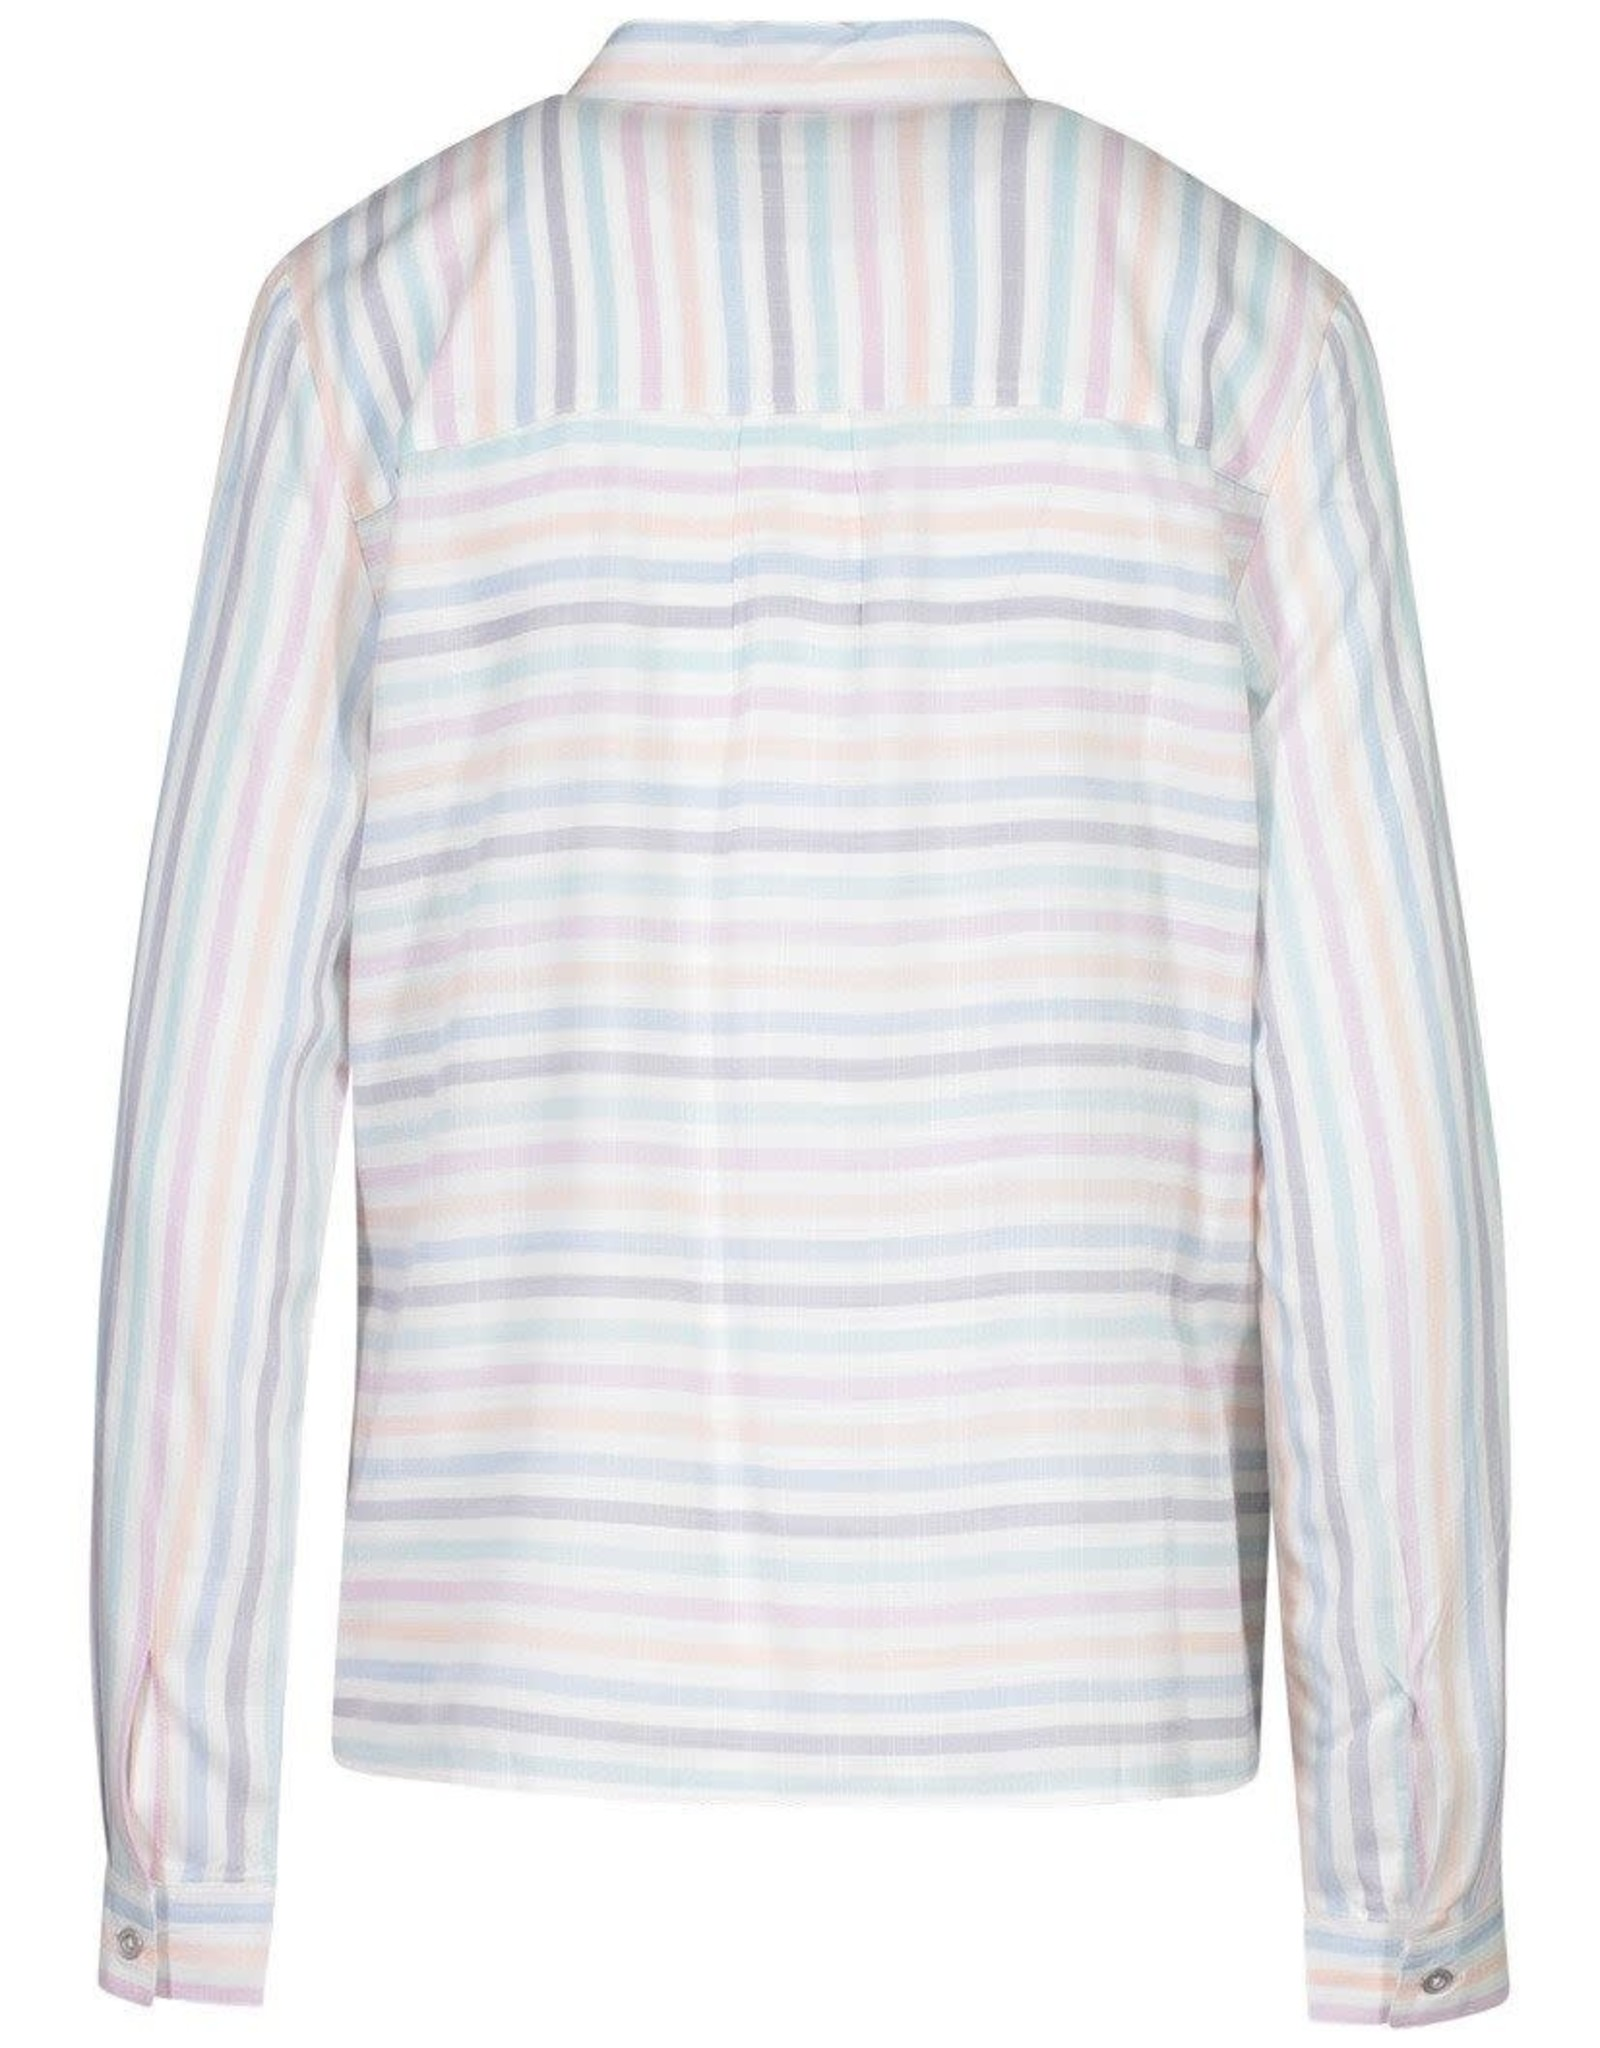 Tribal Multi Colored Stripe Button-Down Top w/Front Tie